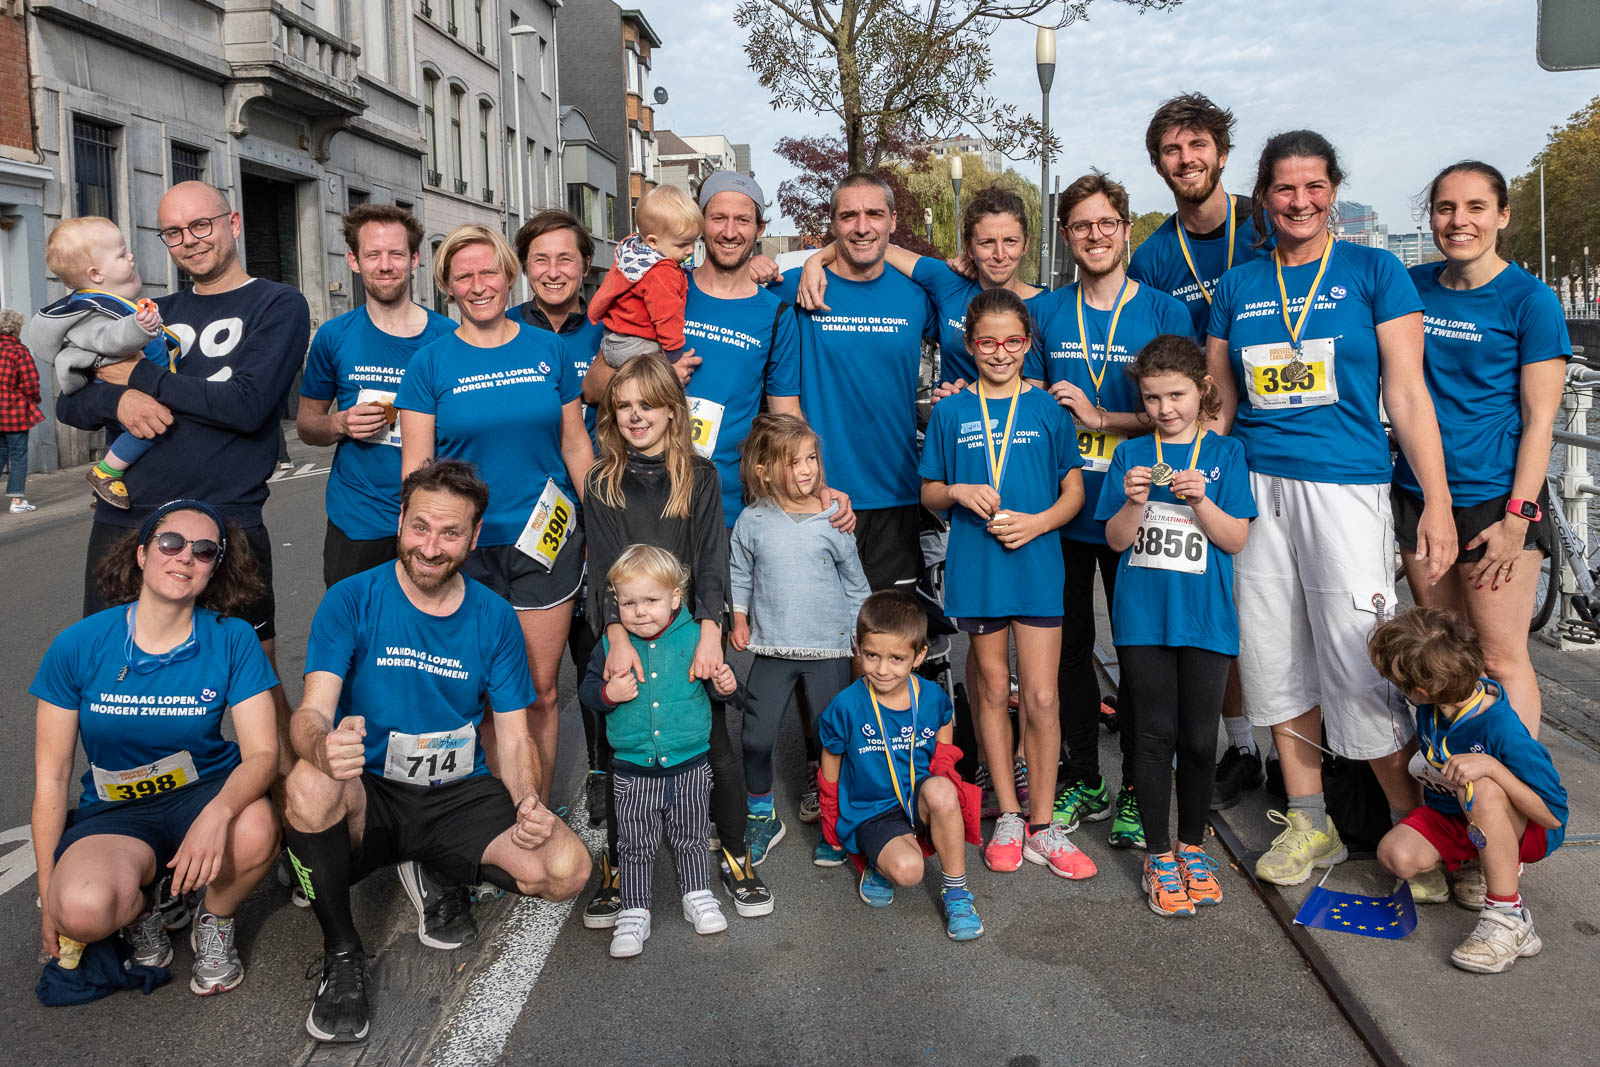 PIC_EVENT_20181020_BRUSSELS-CANAL-RUN_NIKON_027.jpg